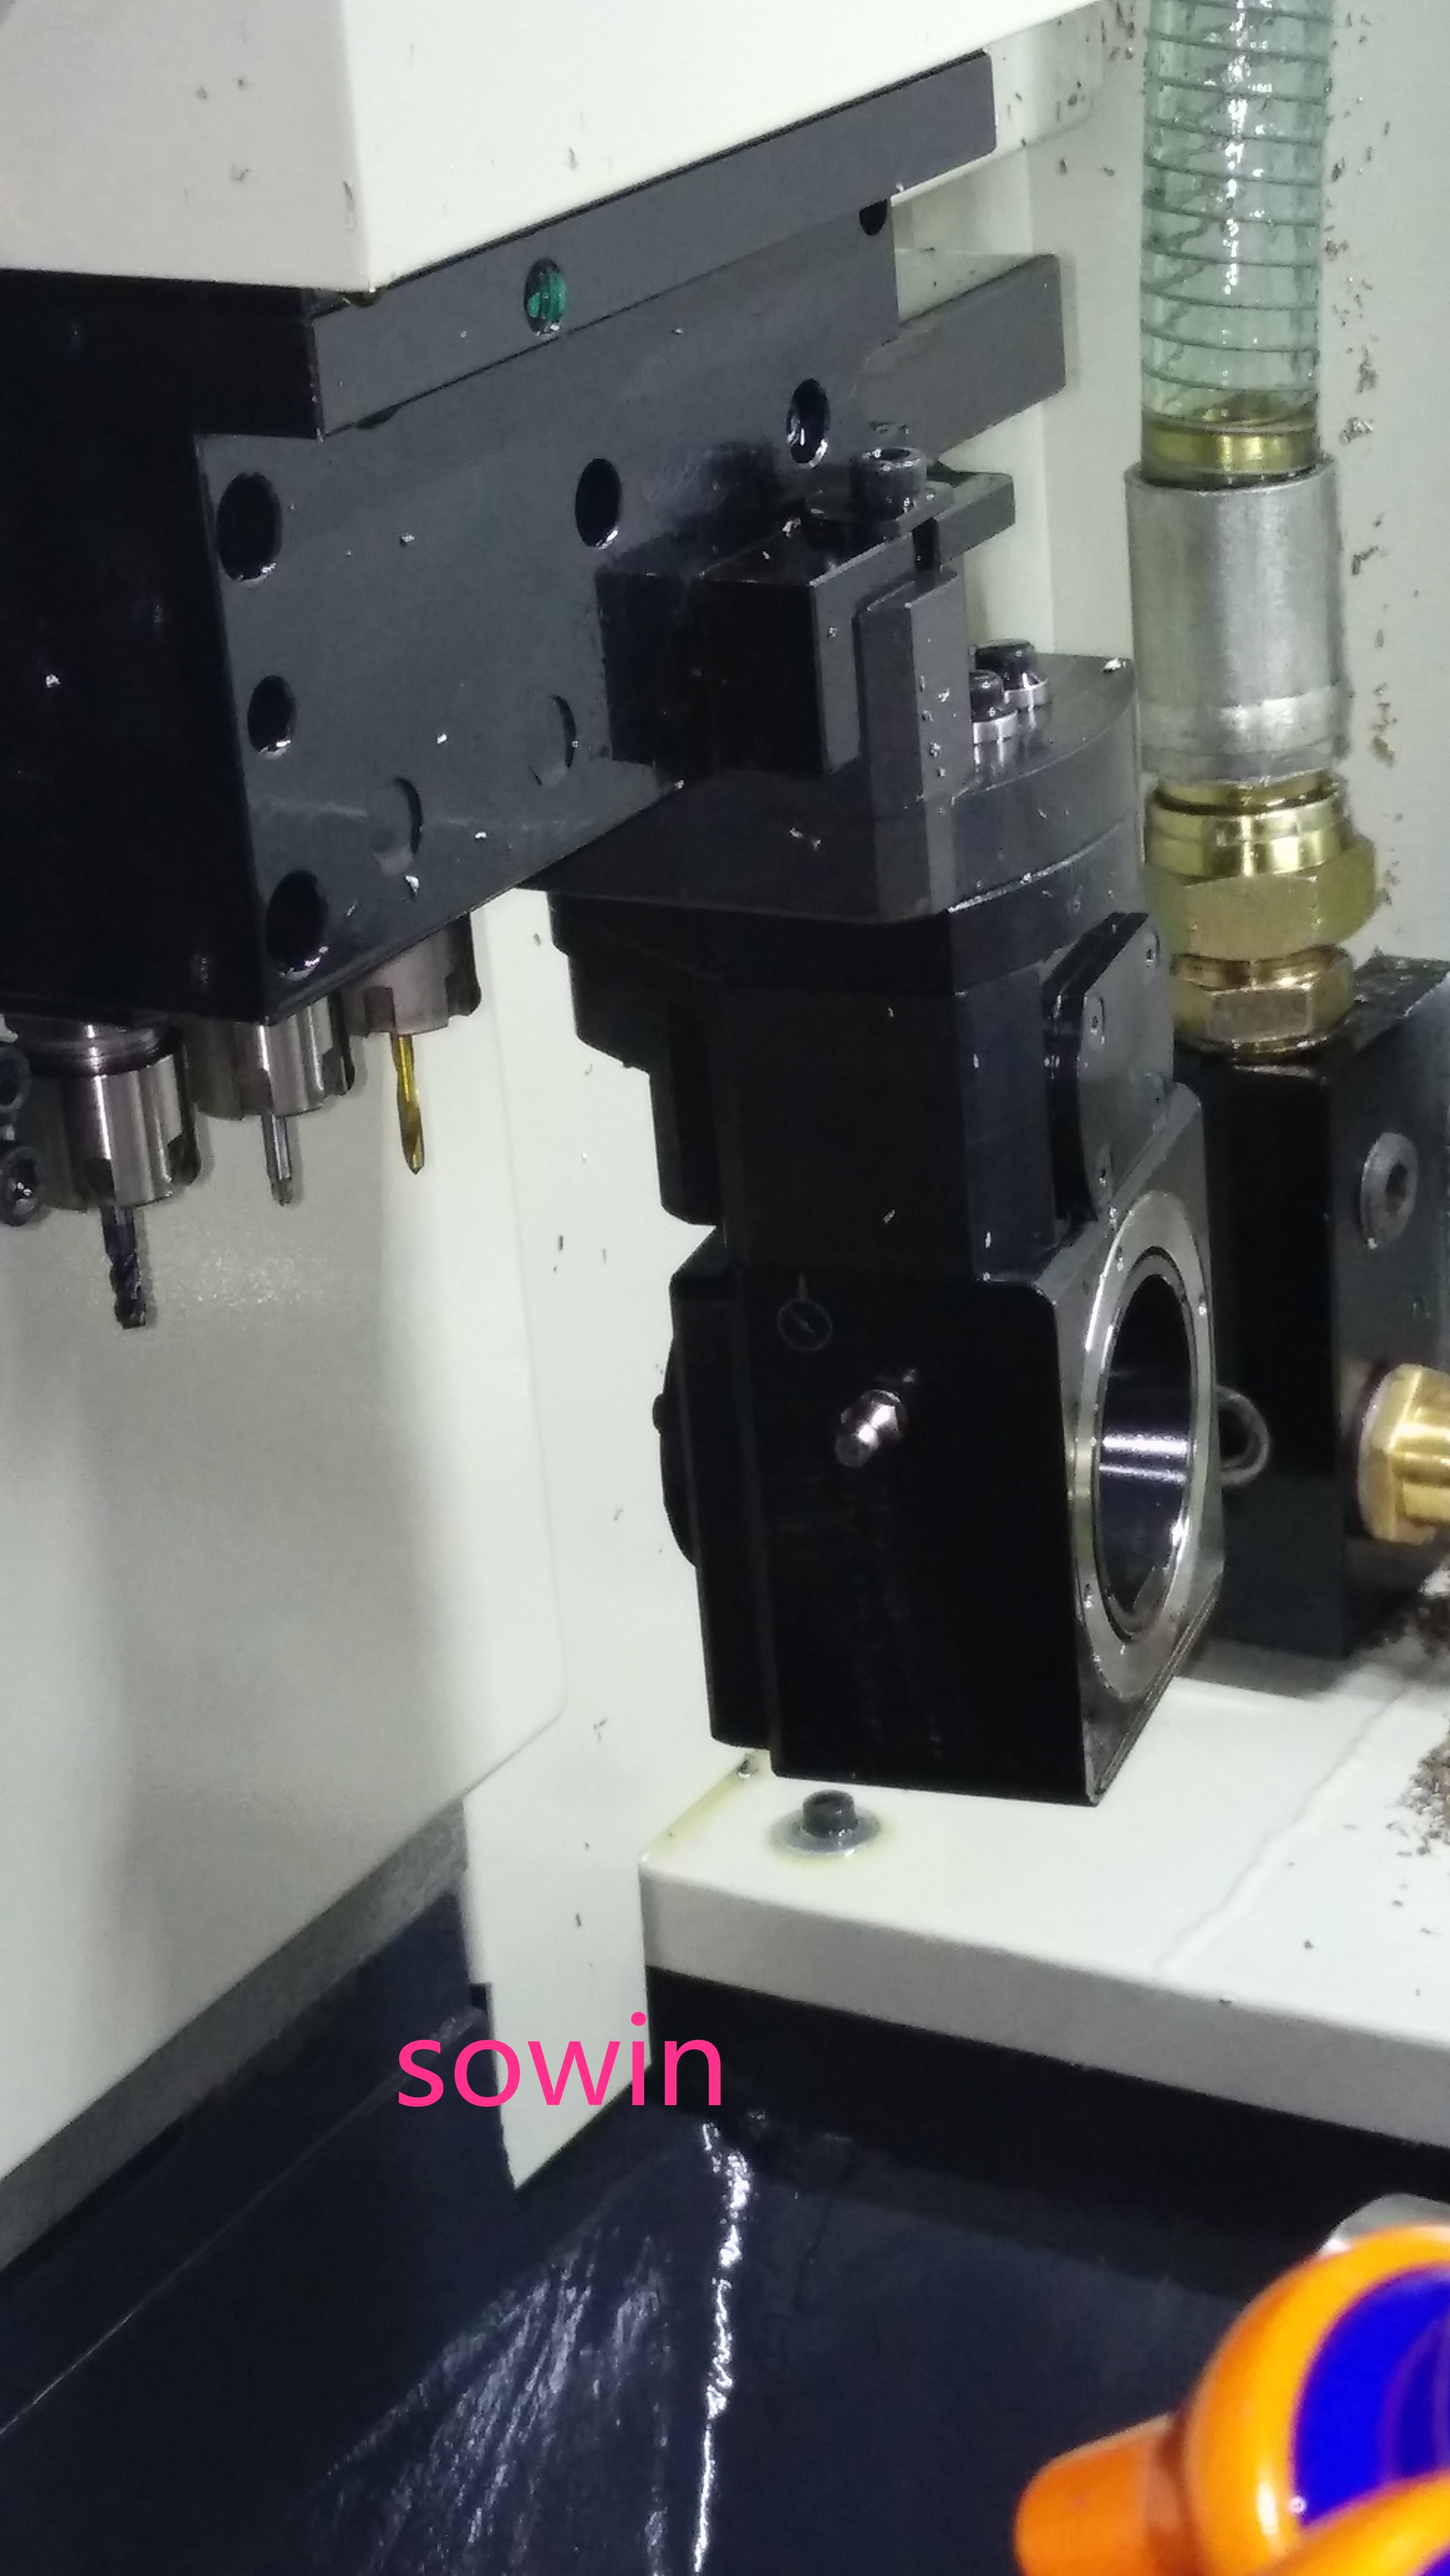 Customized CNC Swiss type lathe with thread whirling unit